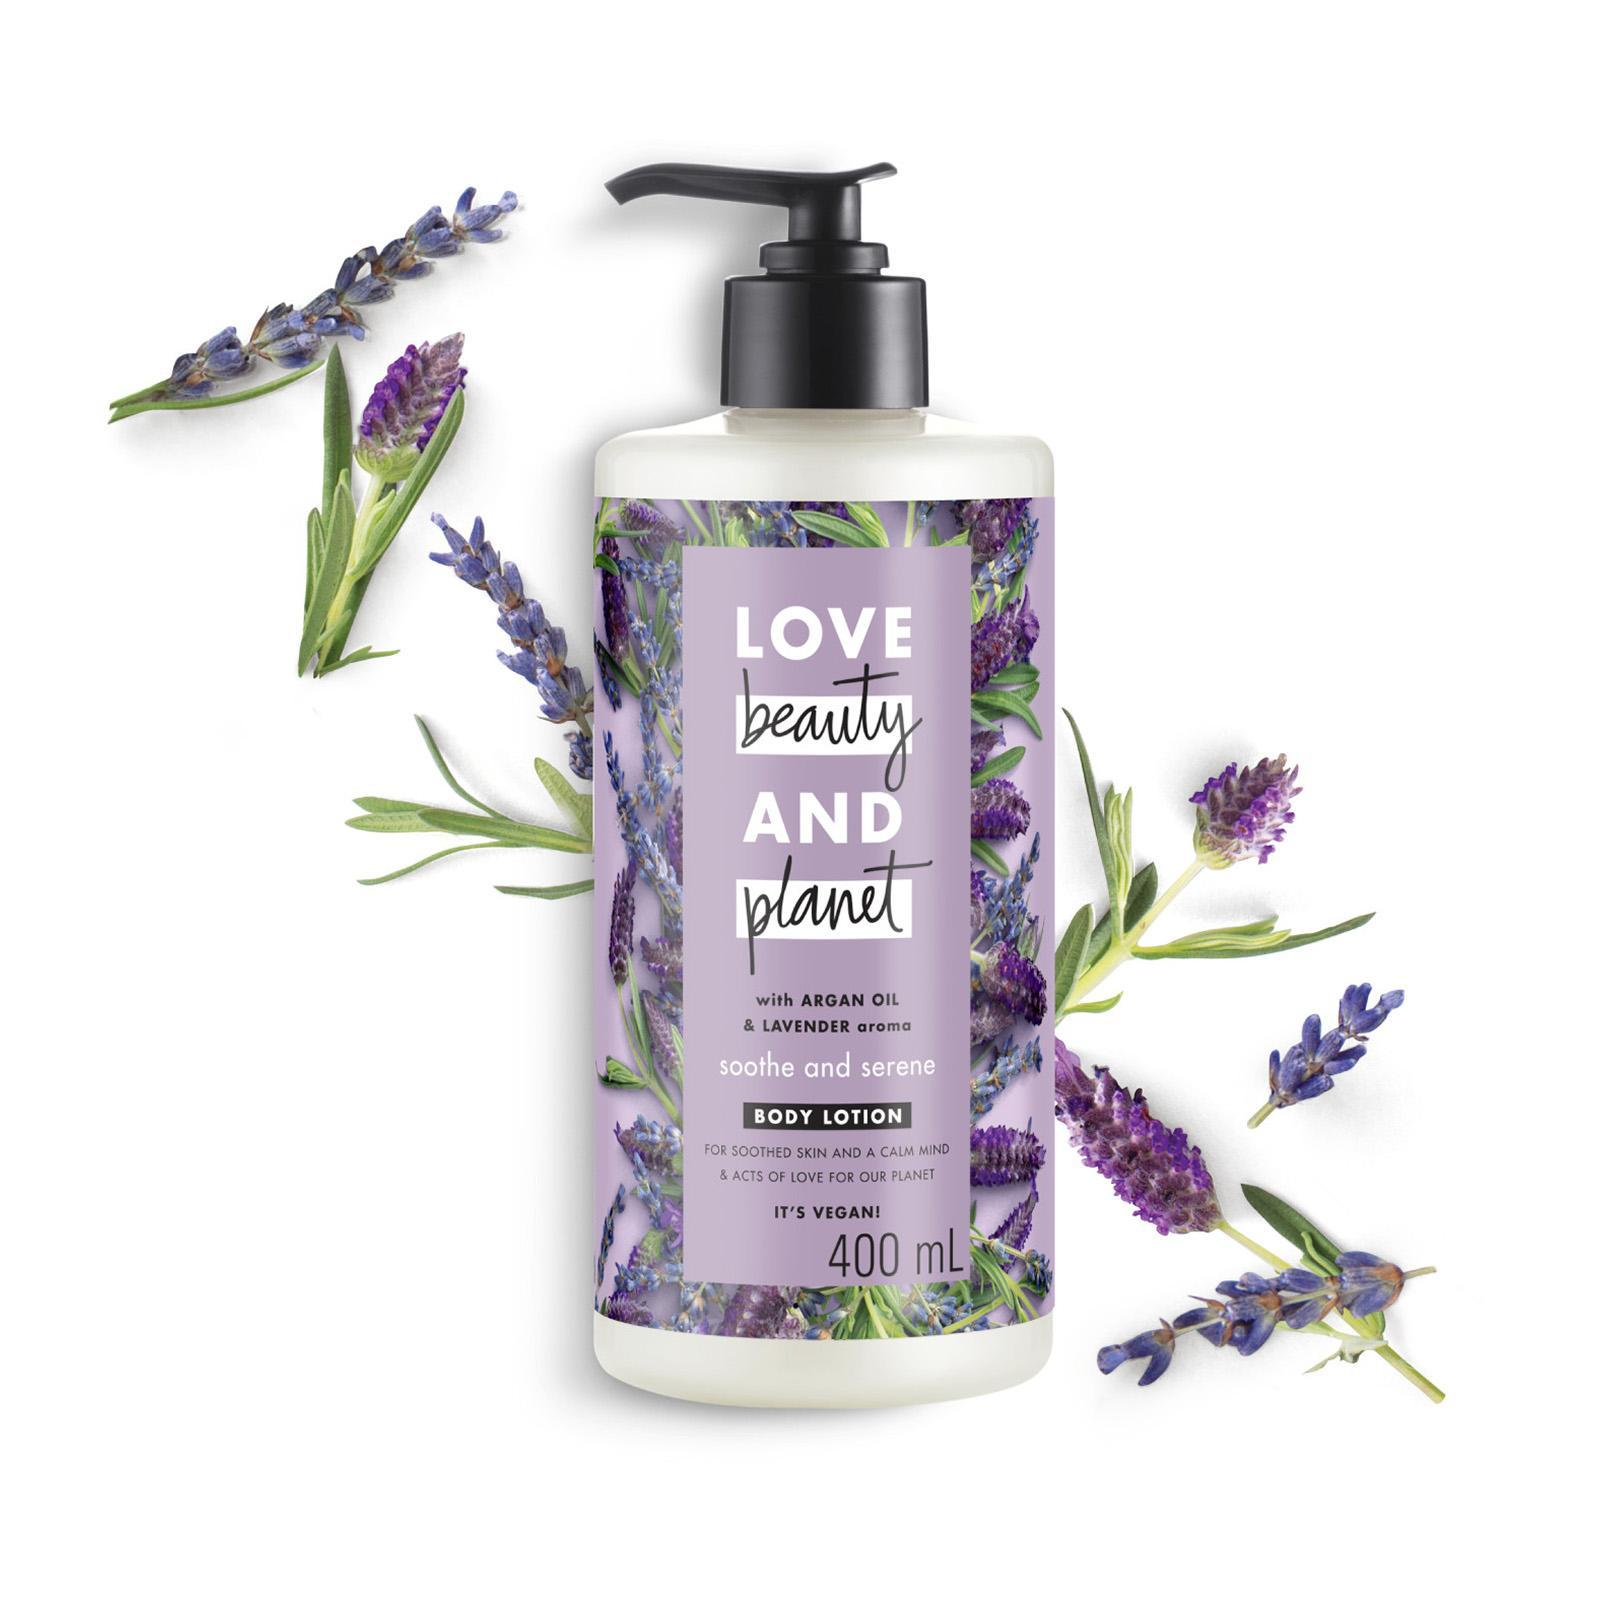 Love Beauty & Planet Vegan Body Lotion Argan Oil and Lavender Soothe and Serene